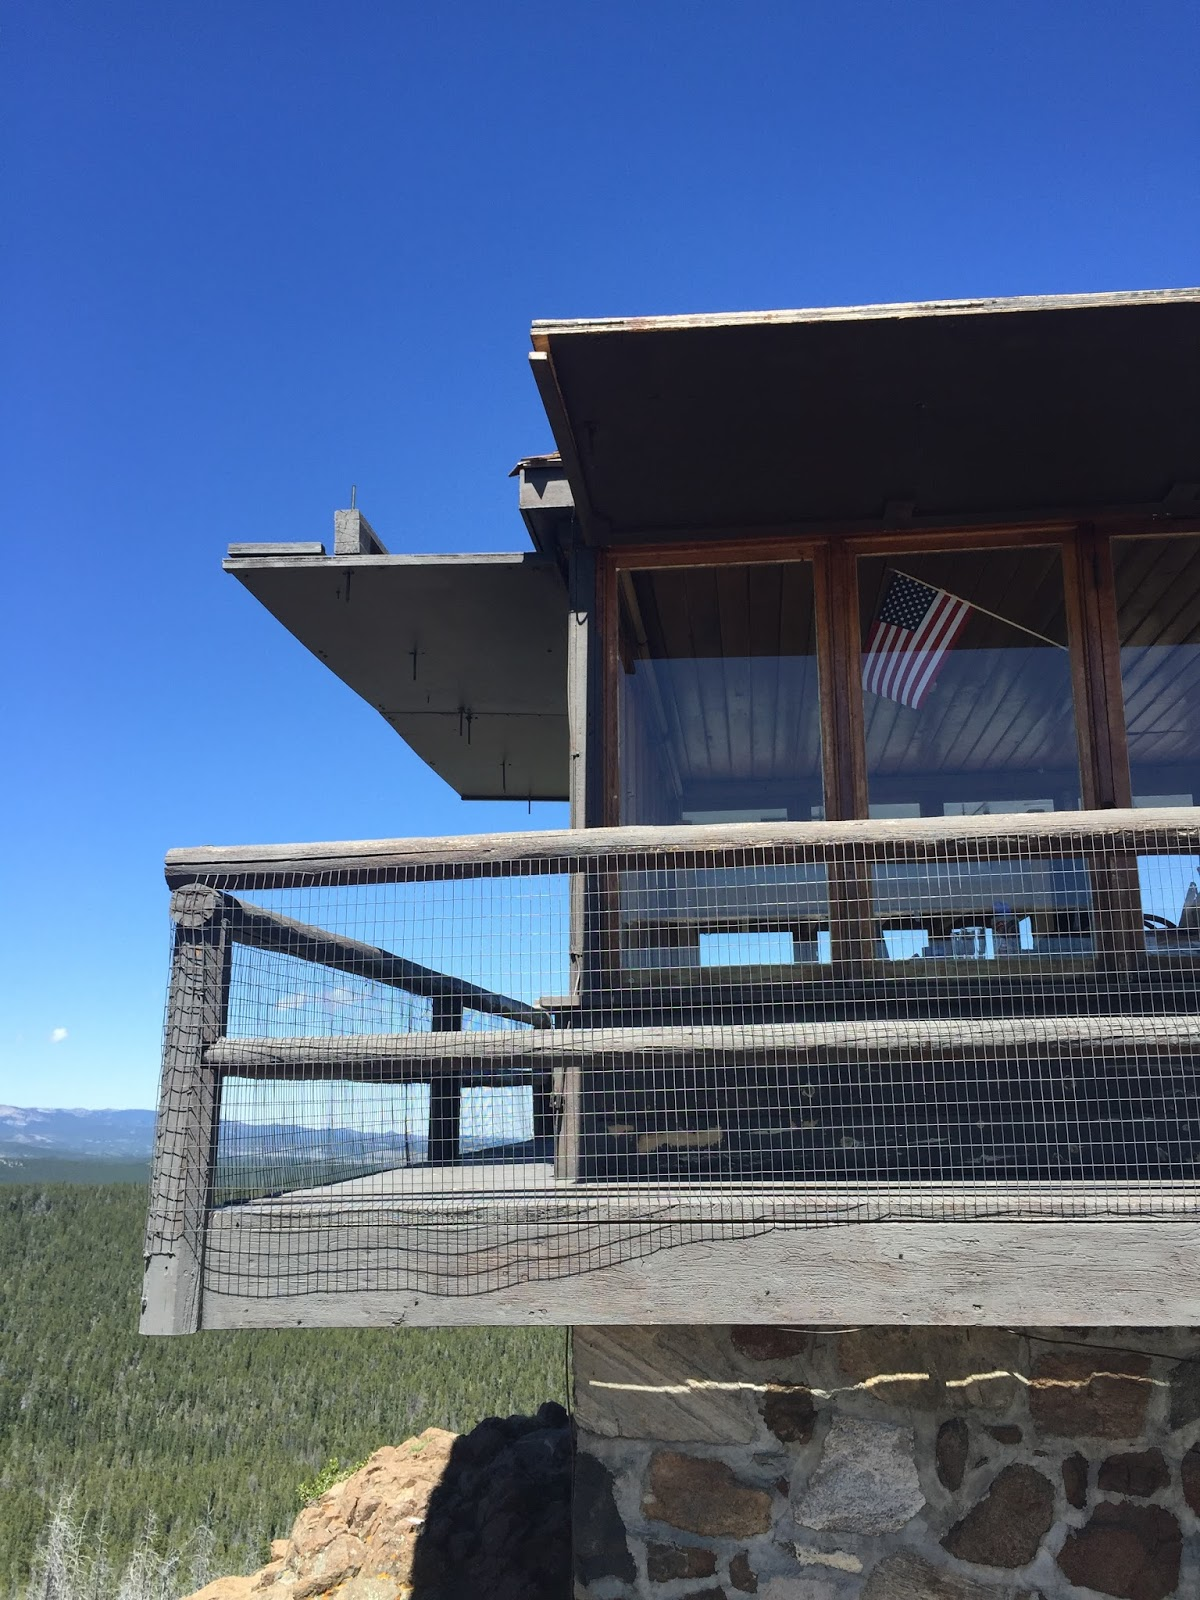 Sheep Mountain LookoutTower